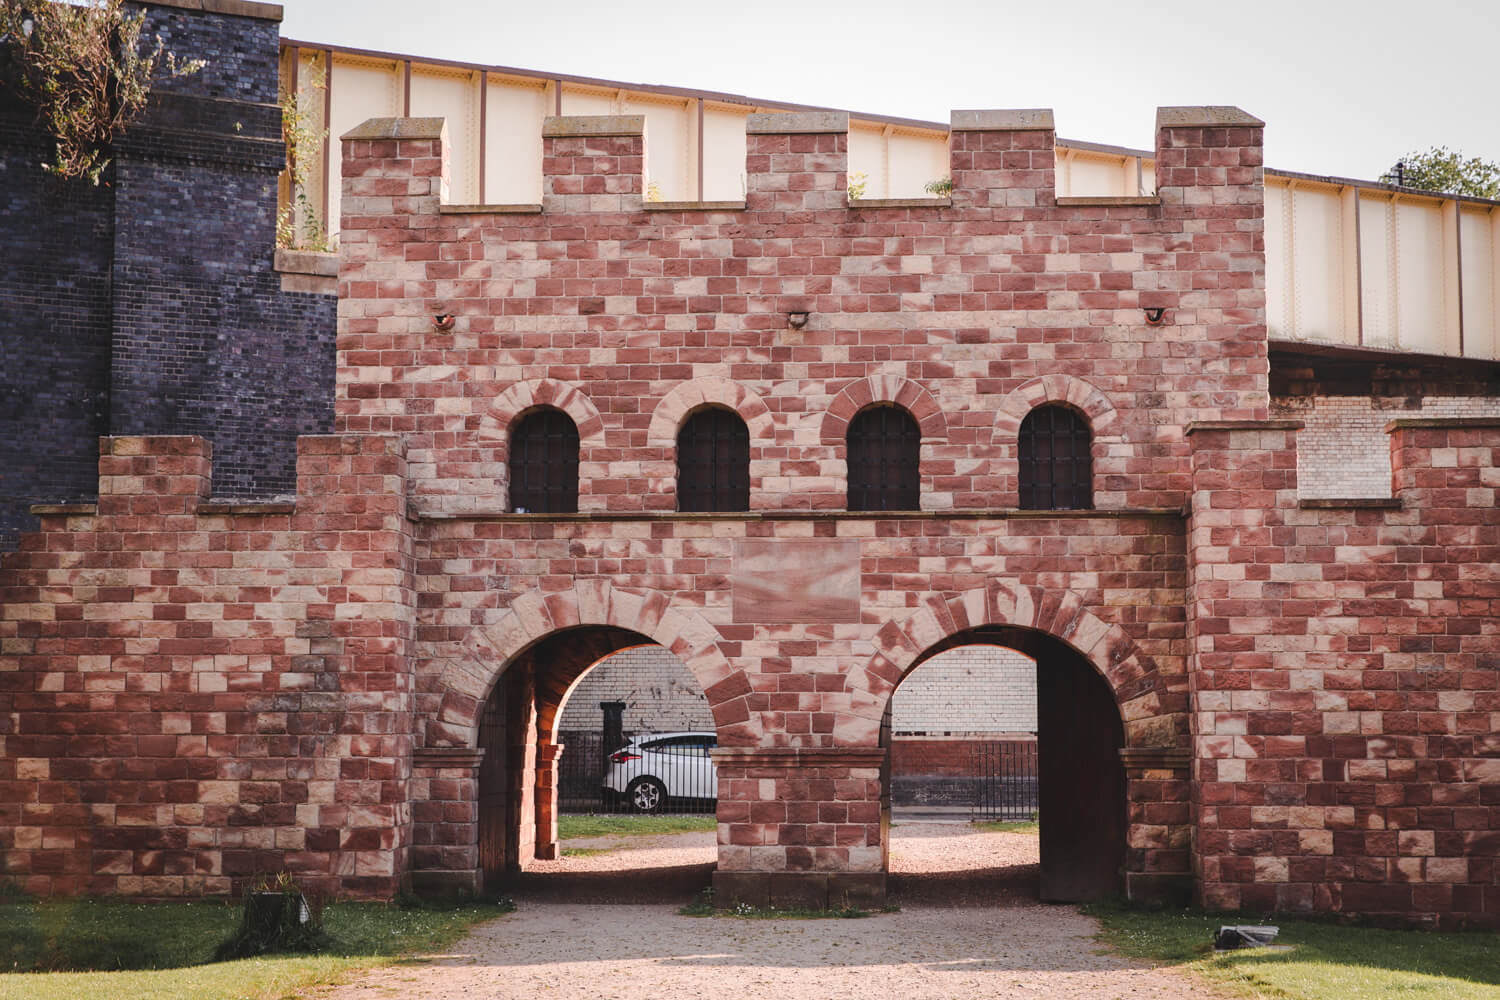 Ancient Roman City Gate to the fort of Mamucium in Manchester UK is made of red and cream bricks. There are 4 windows with two spots for cars to drive through.